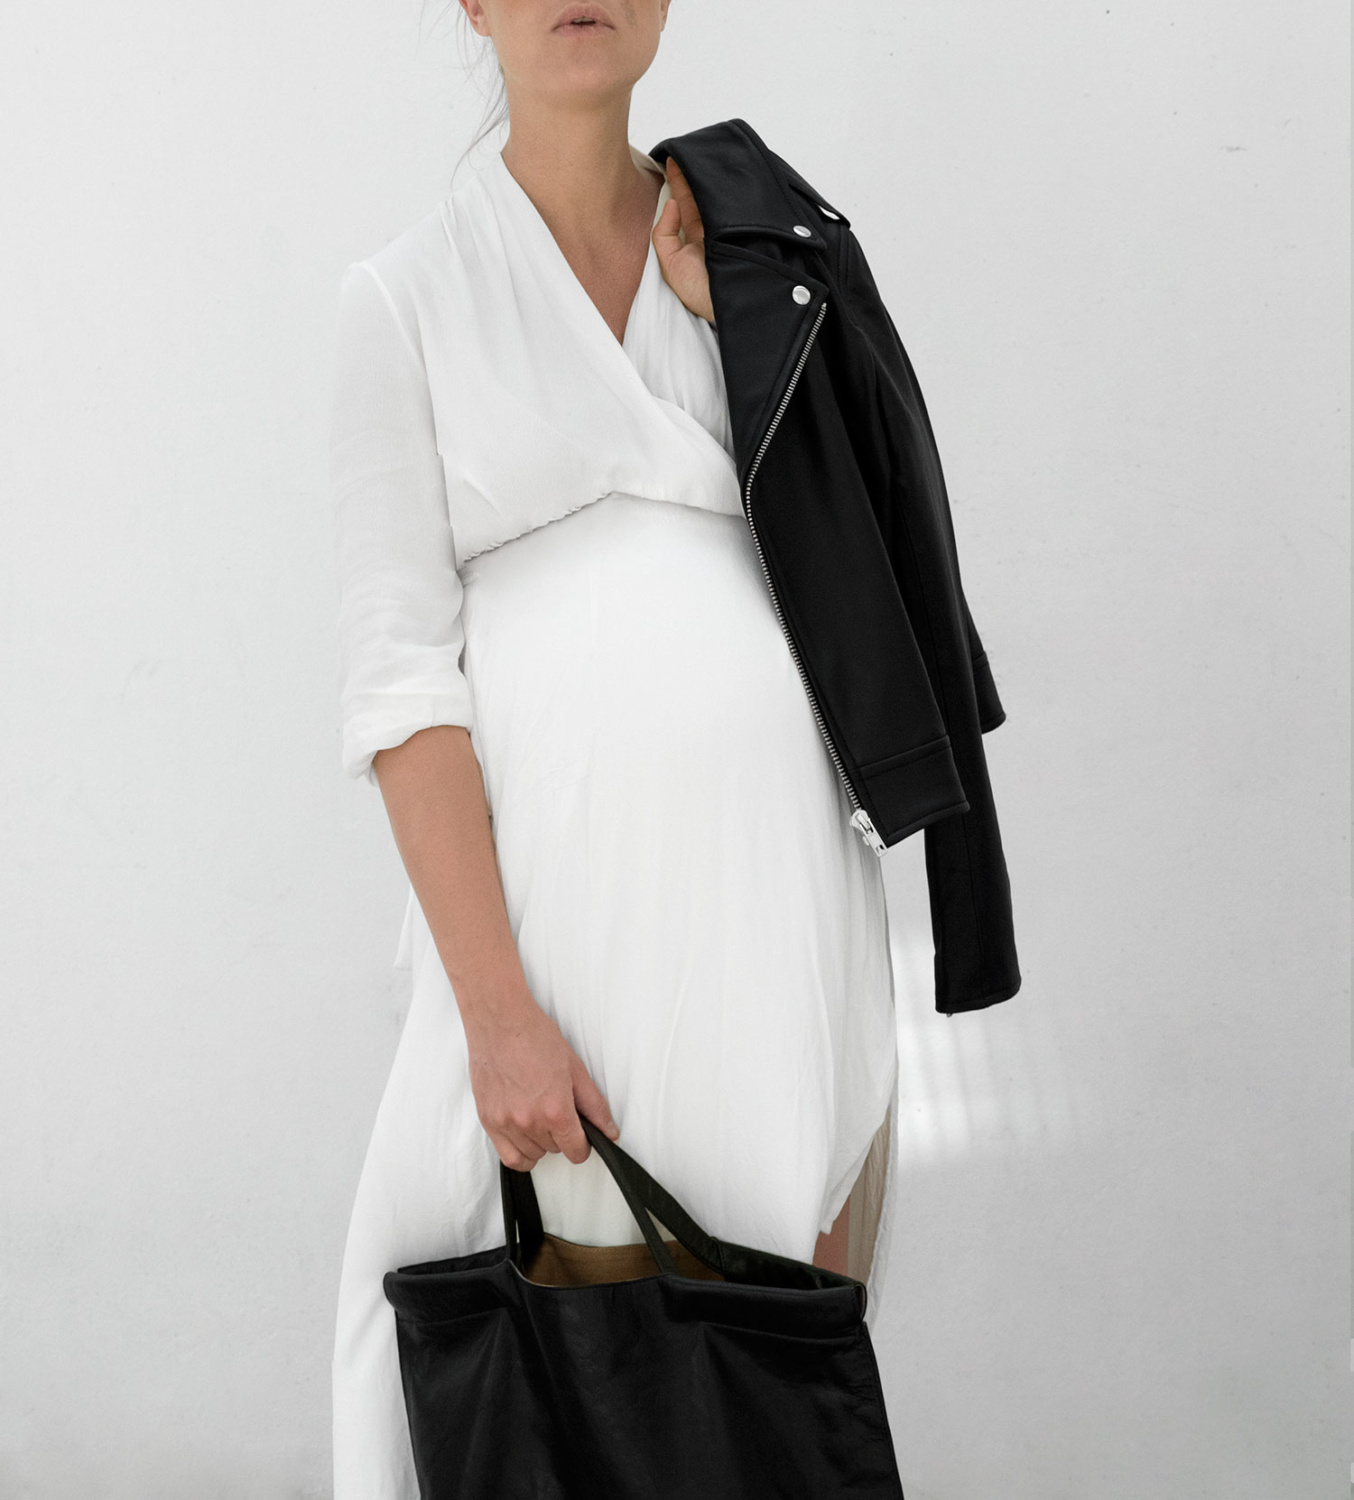 Leather Weather / Crepe Silk + Leathers Part 2⎮Pregnancy Style